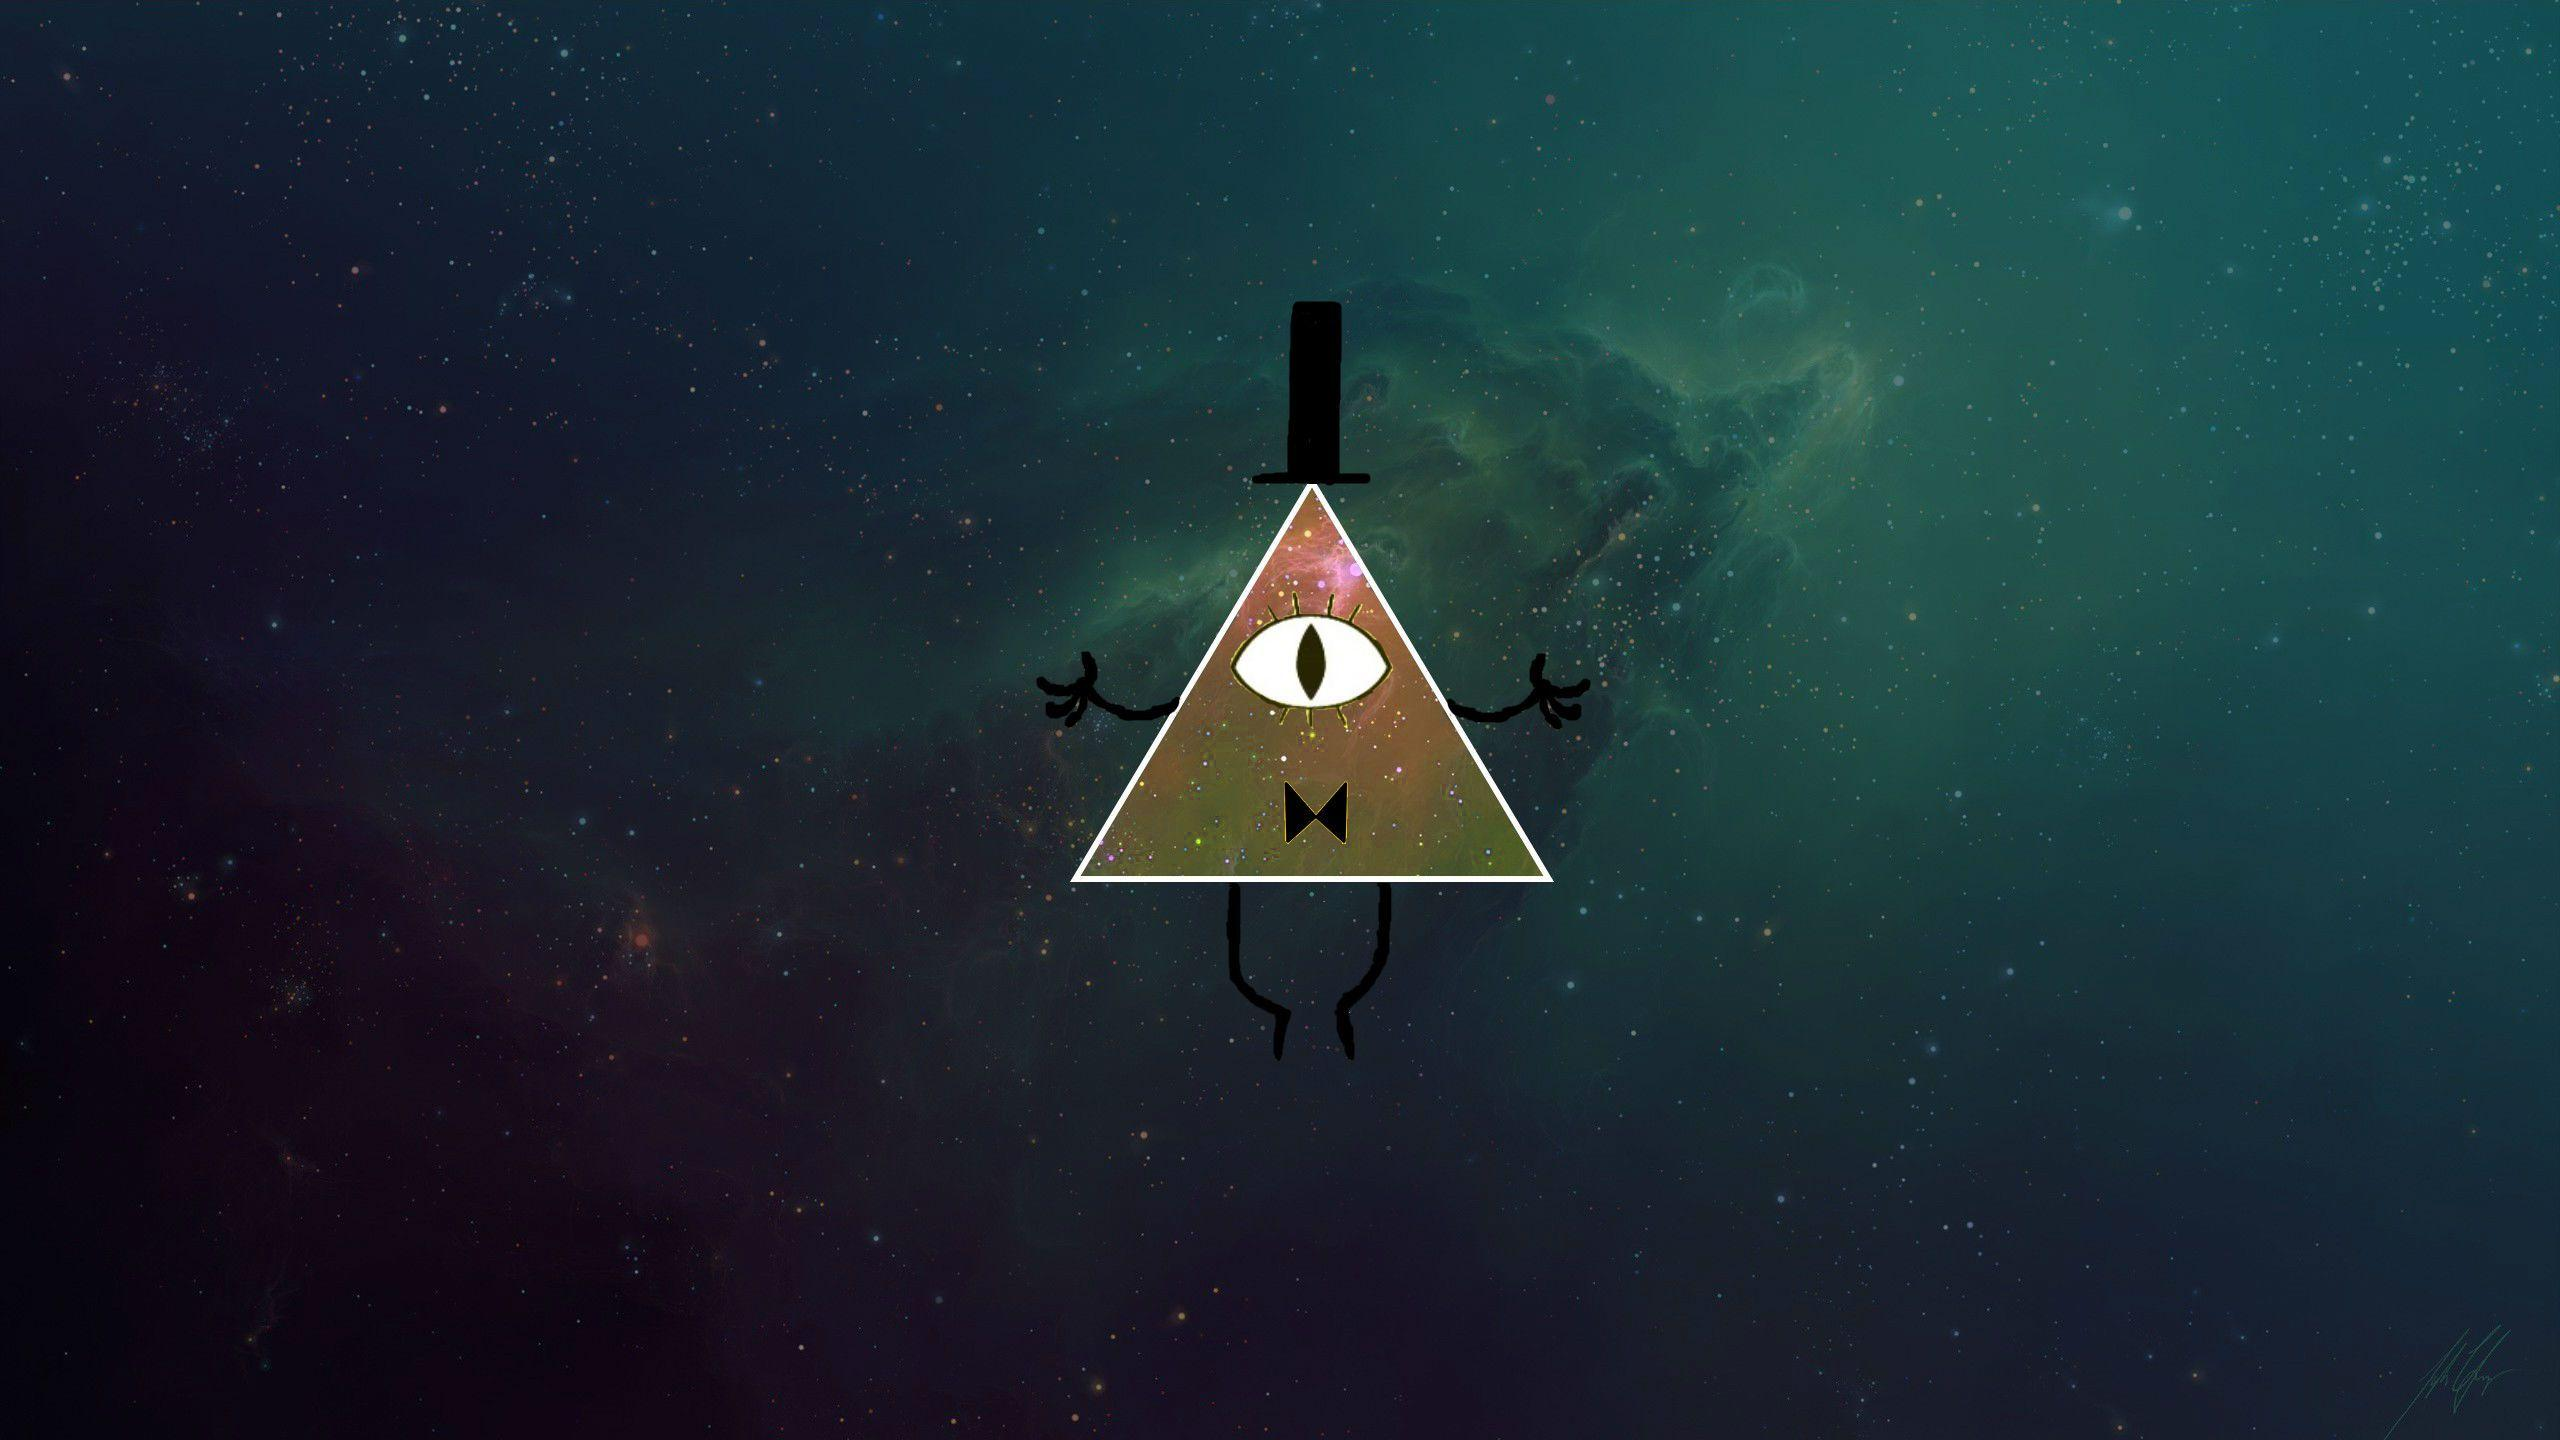 Gravity Falls Bill Cipher Wallpaper Phone Gravity Falls Wallpapers Wallpaper Cave